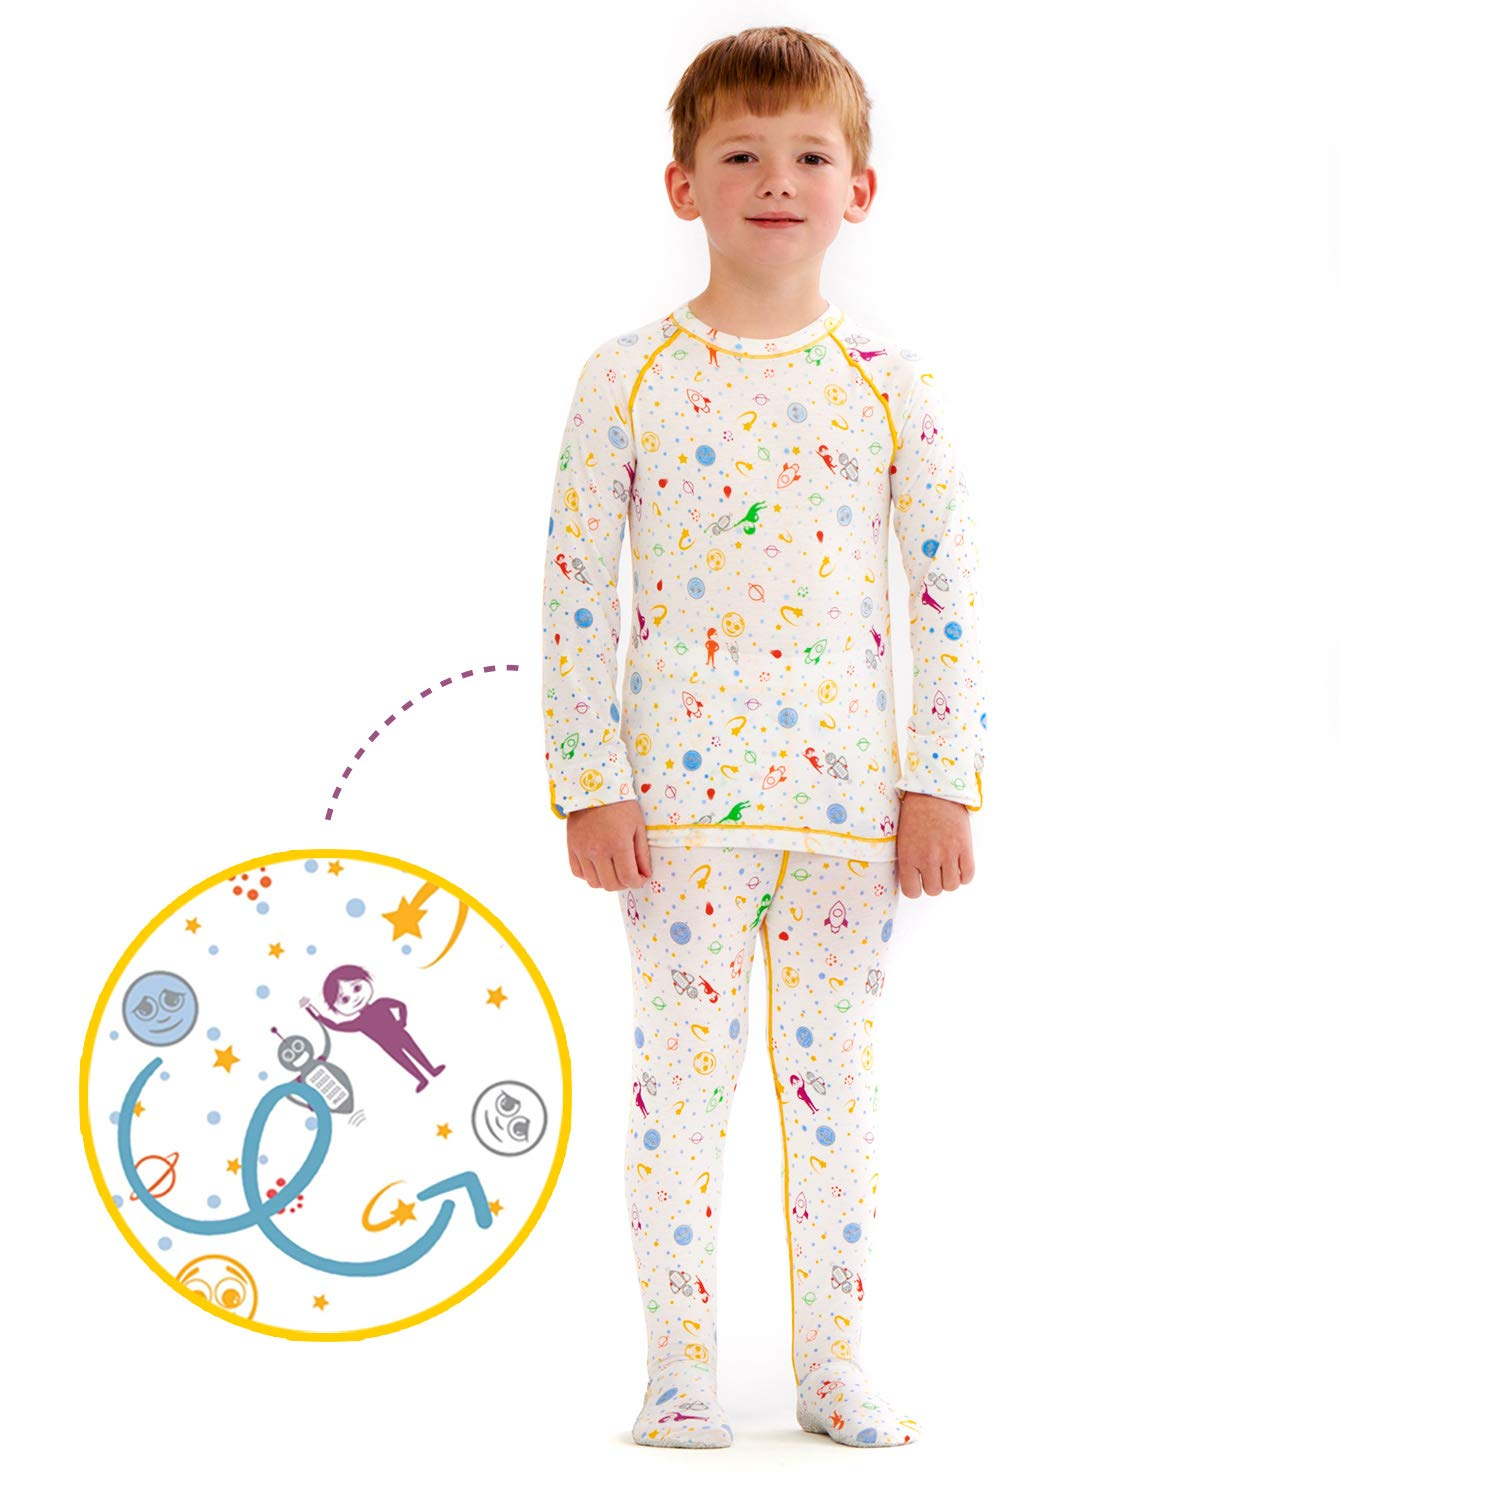 Kids Eczema Itch & Rash Relief Sleepwear Treatment Set (6)